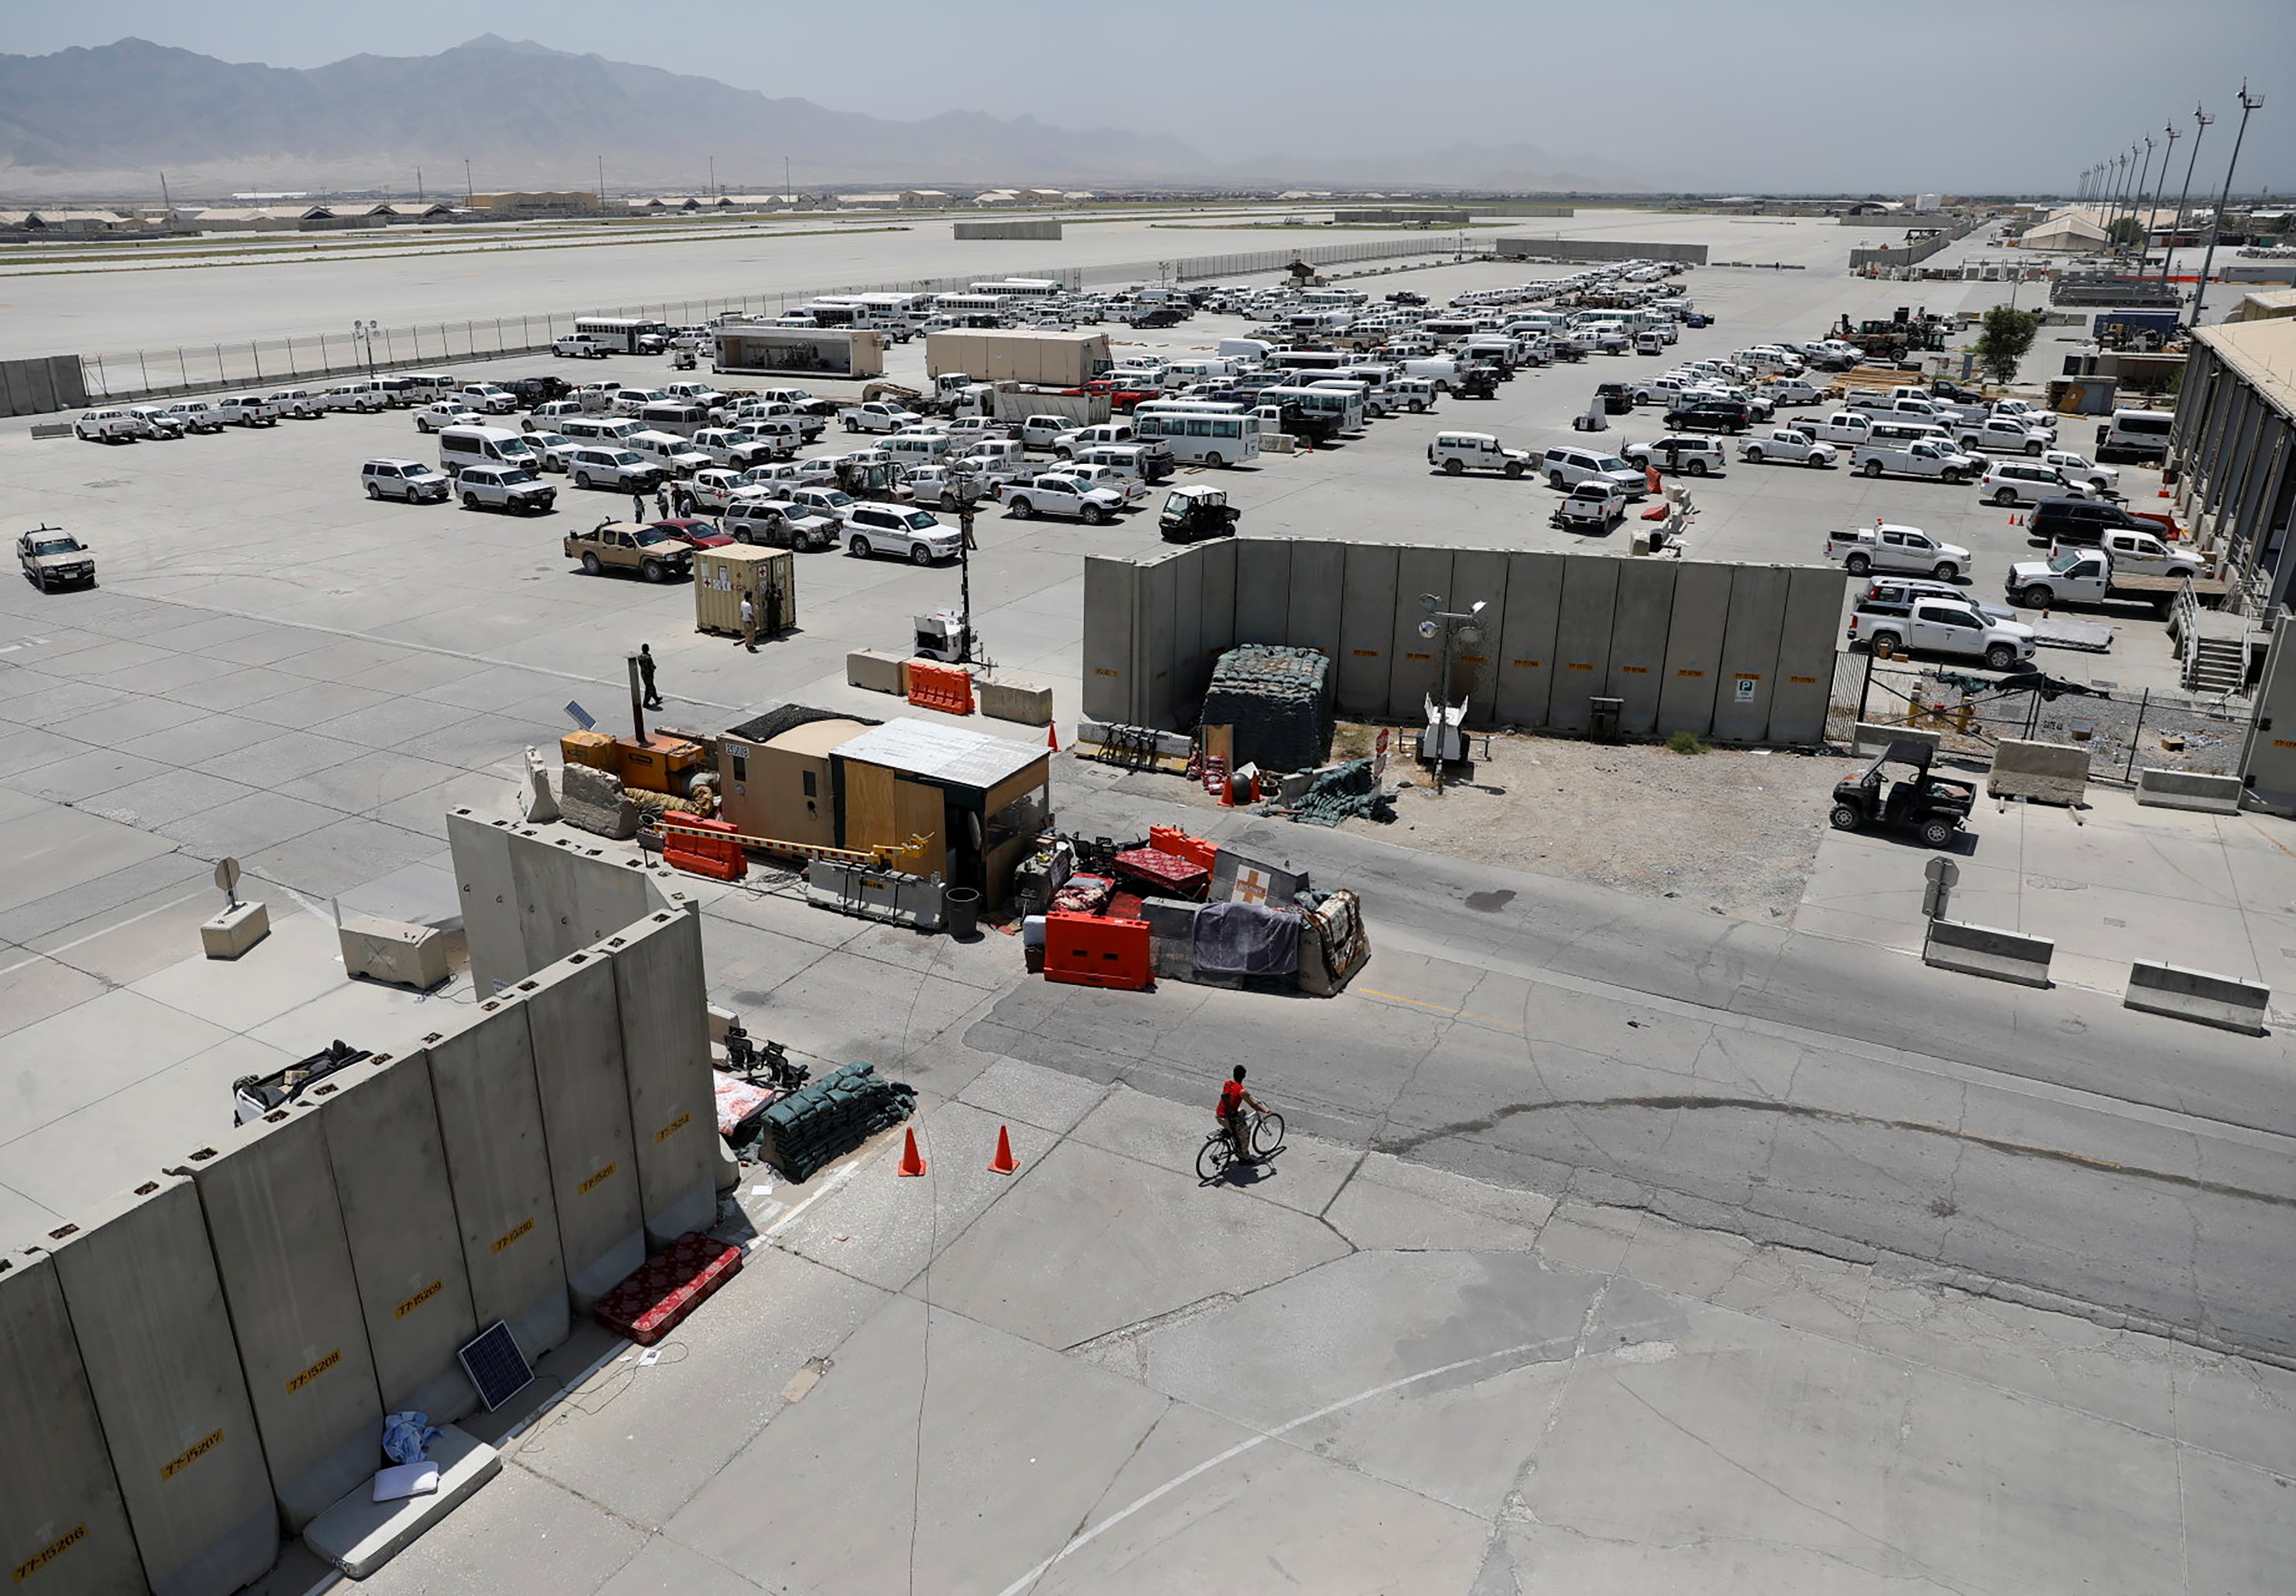 Parked vehicles are seen in Bagram U.S. air base, after American troops vacated it, in Parwan province, Afghanistan July 5, 2021. REUTERS/Mohammad Ismail